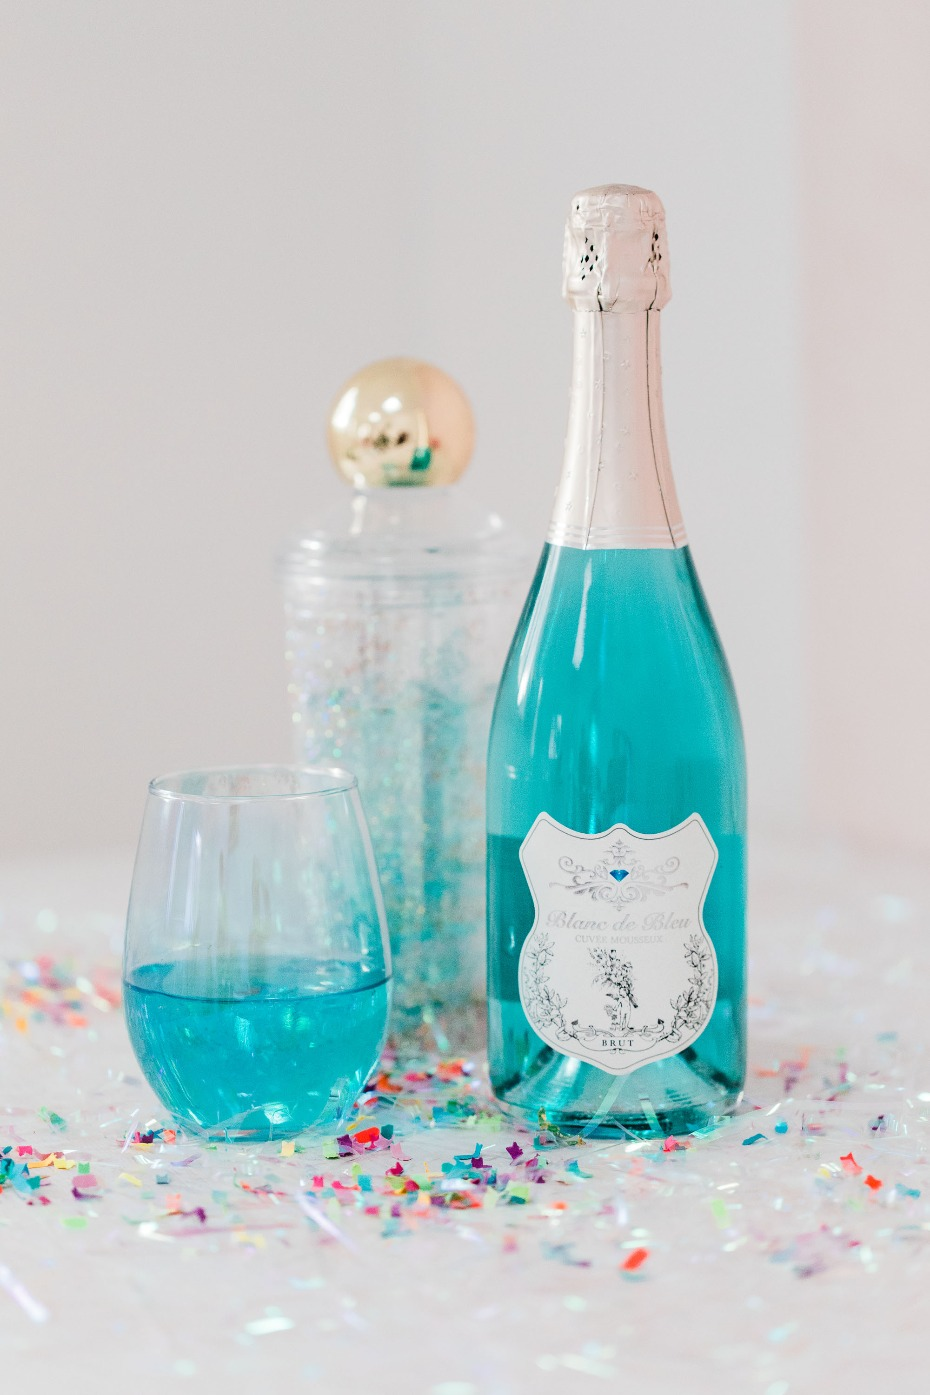 Blanc de Bleu Bachelorette Party Shoot Photo by Radion Photography